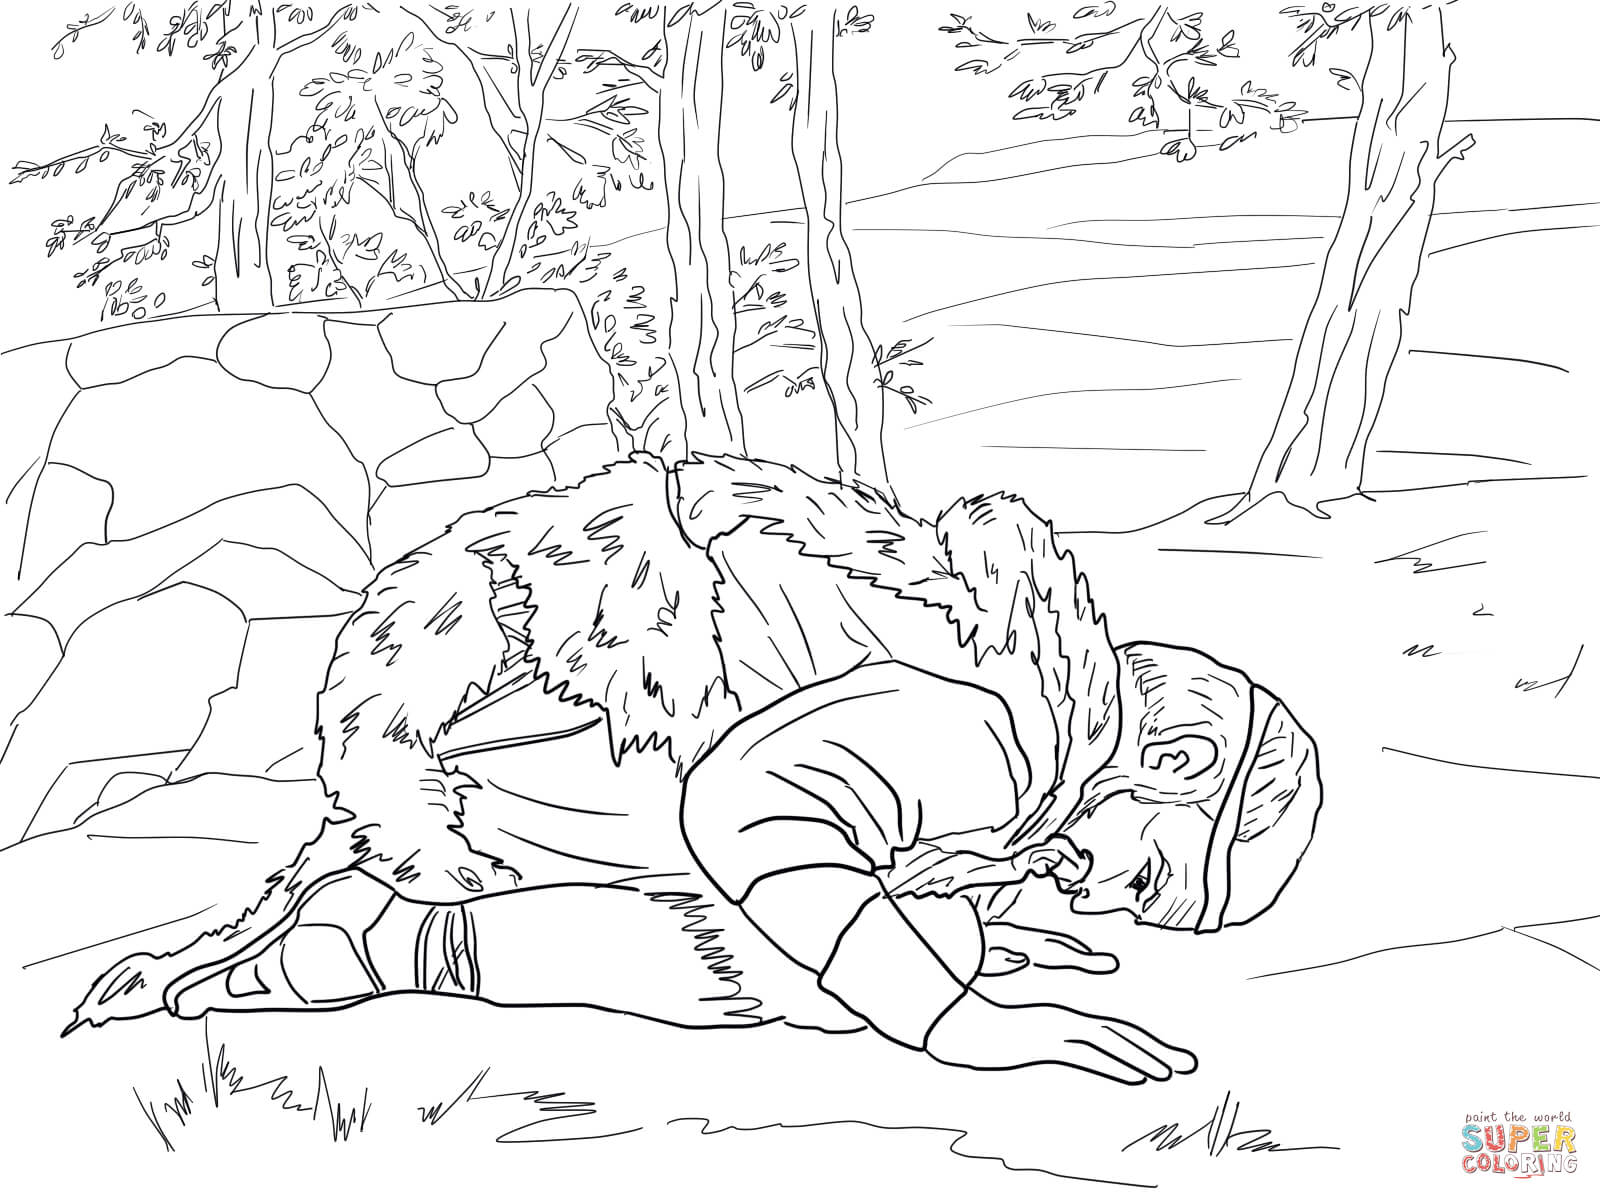 Free coloring pages elijah goes to heaven - Free Coloring Pages Elijah Goes To Heaven Free Coloring Pages Elijah Goes To Heaven Free